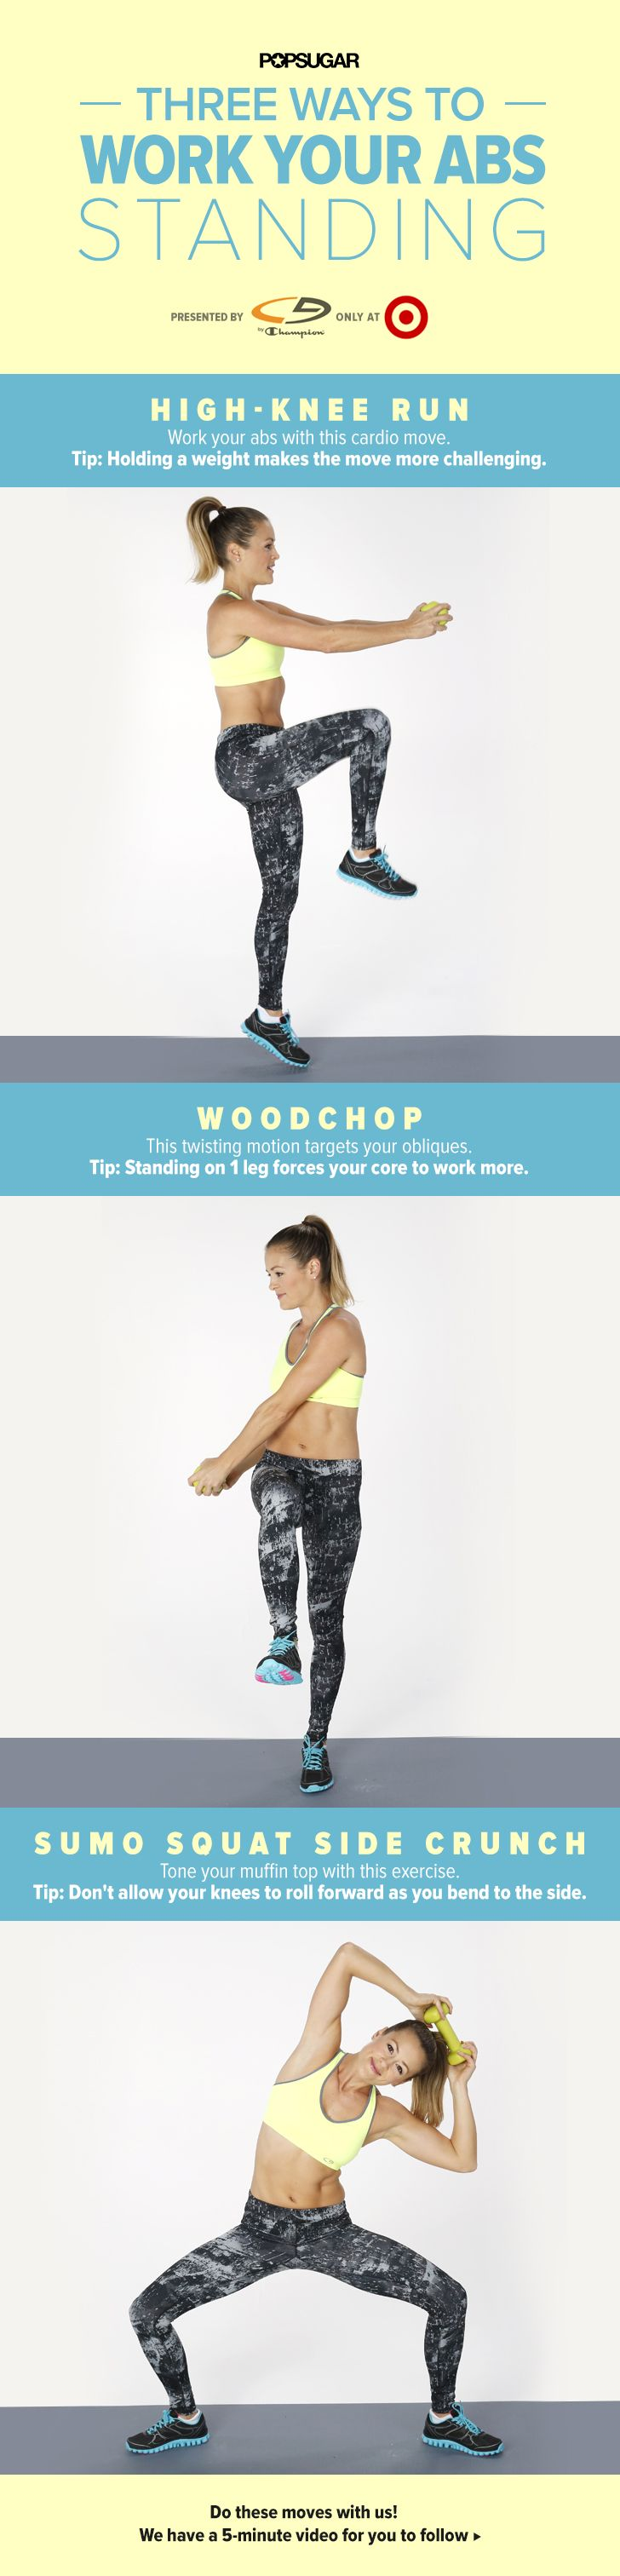 This 5-minute core workout video tones the abs while standing and adding weights to the moves makes them even more effective. This is functional fitness at it's best.